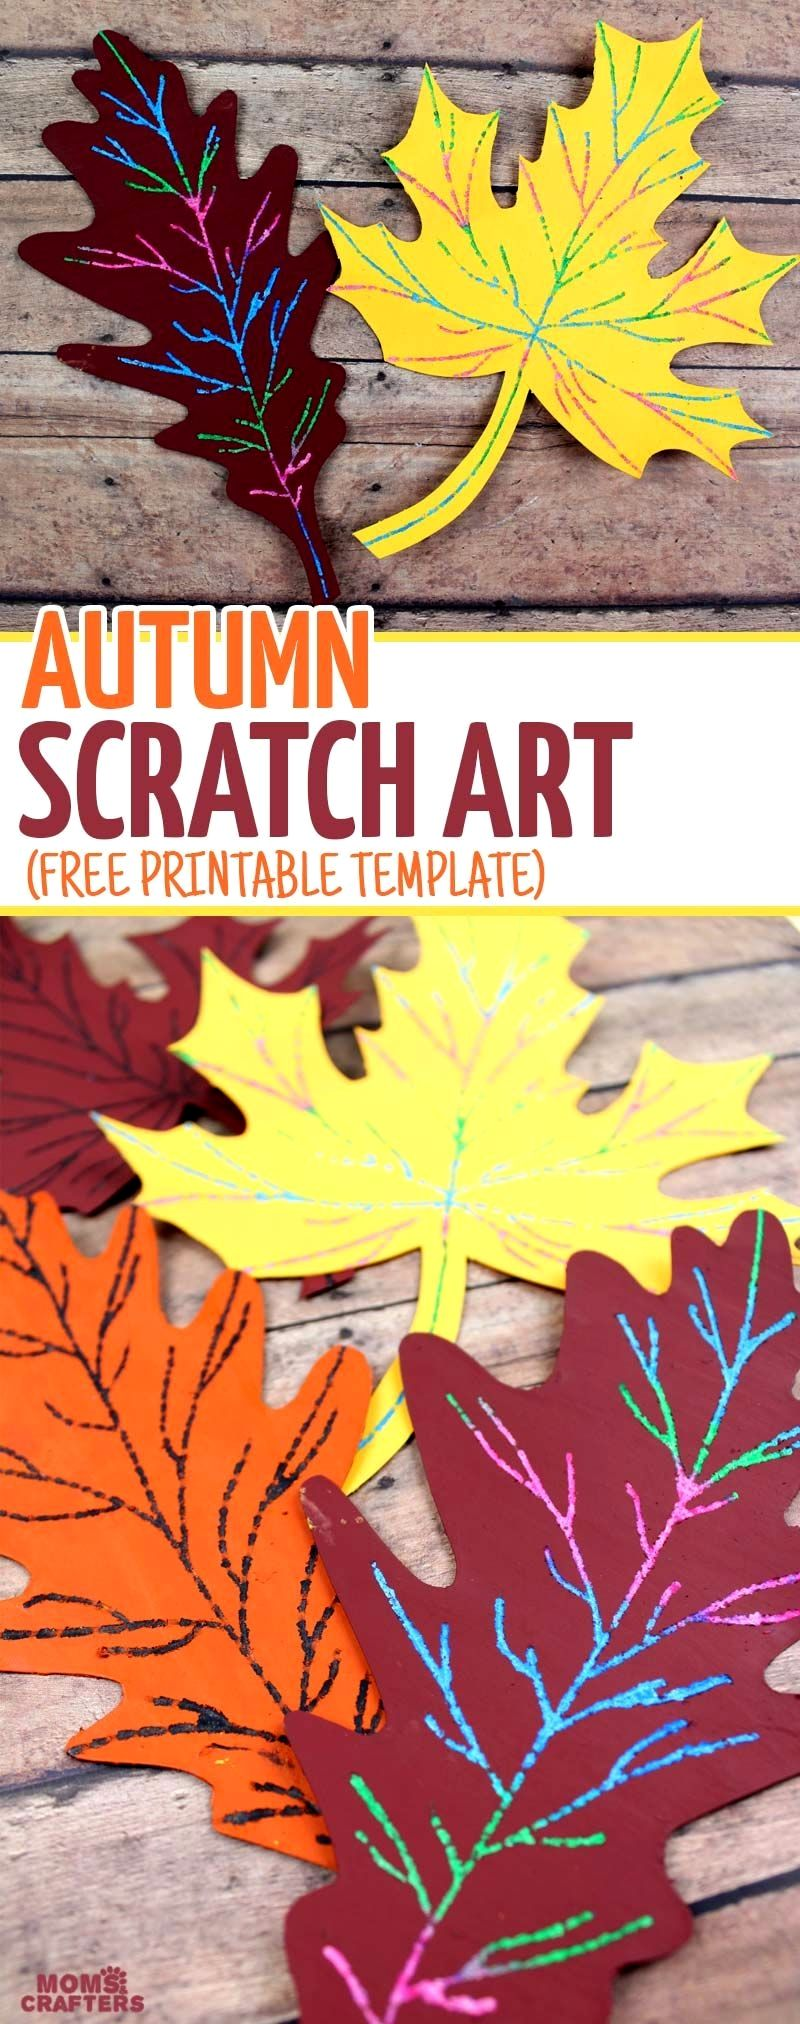 21+ Fall arts and crafts for adults ideas